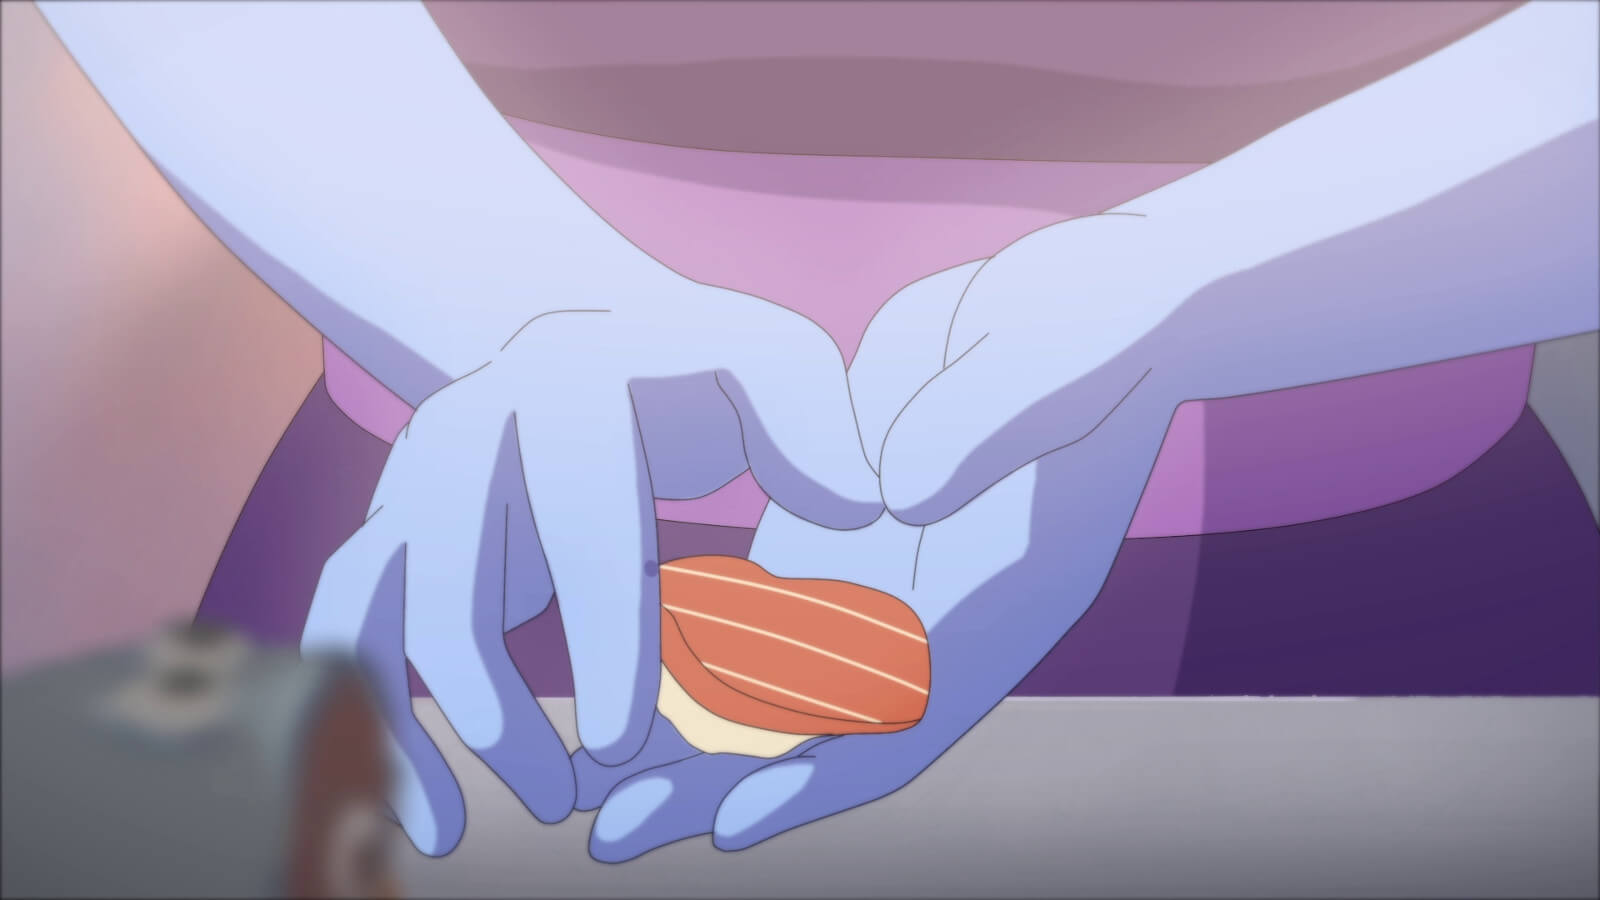 Hands holding a food item